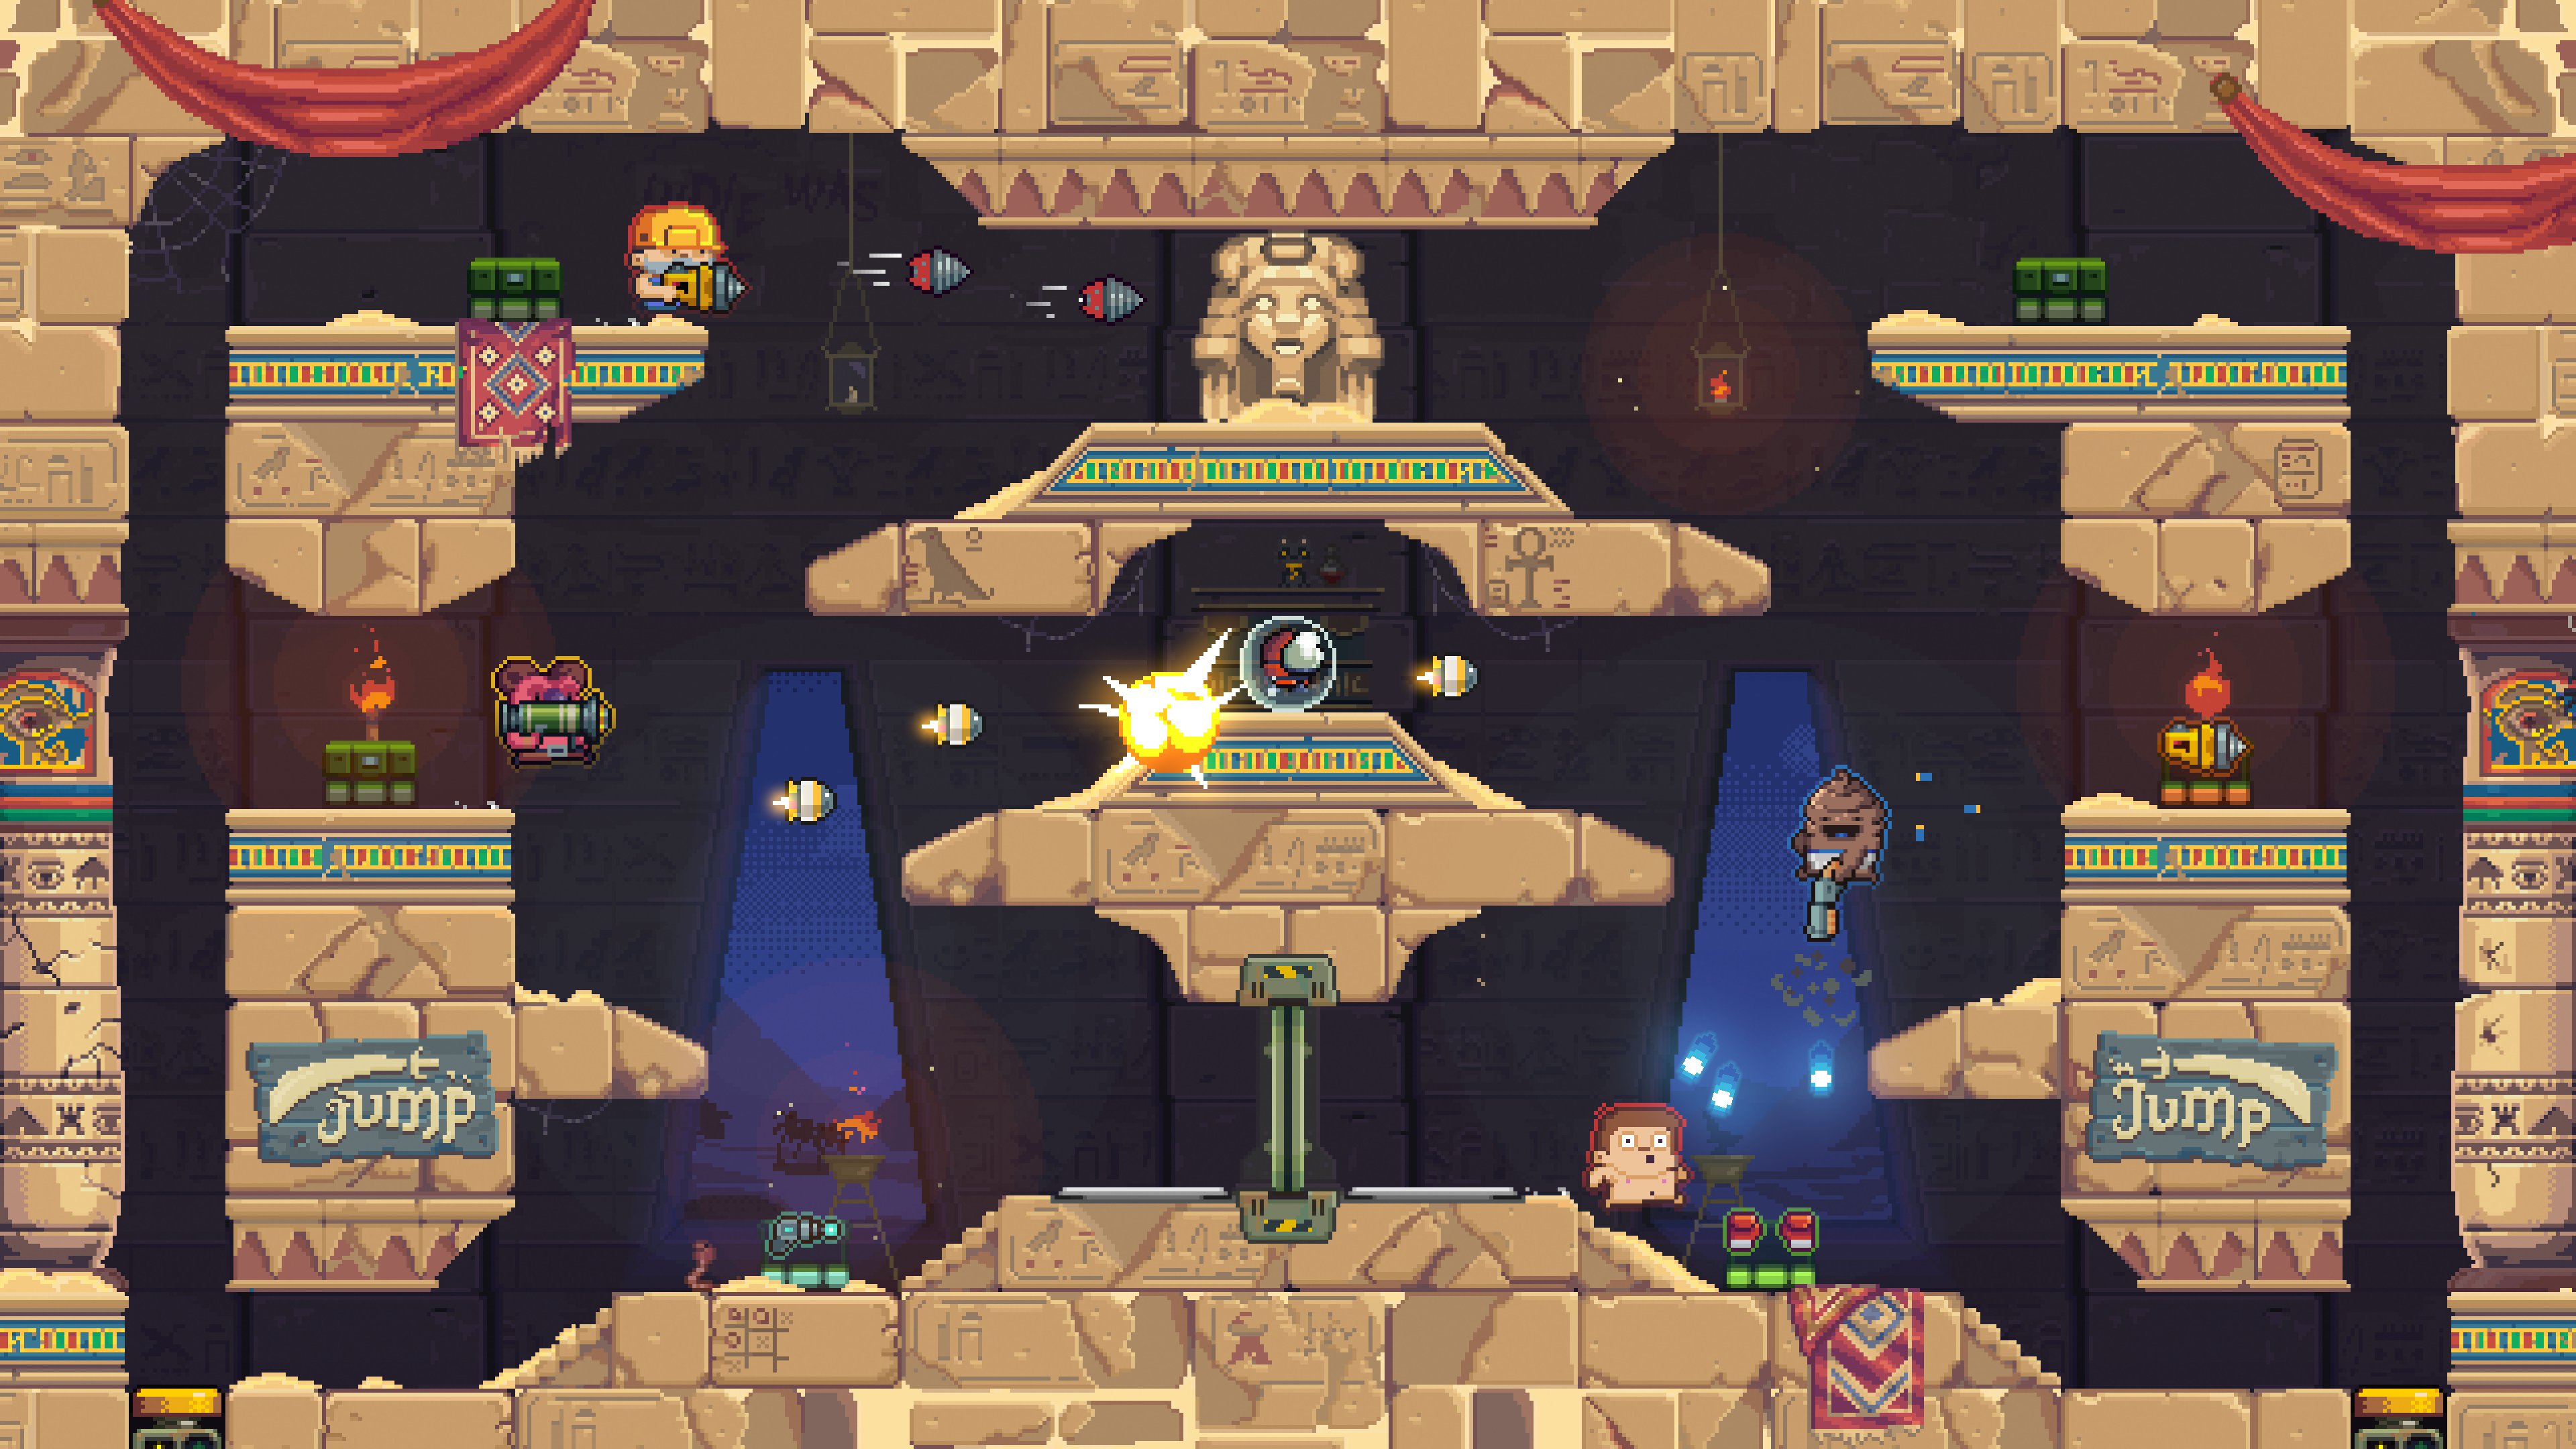 Game action in the Sun Temple stage